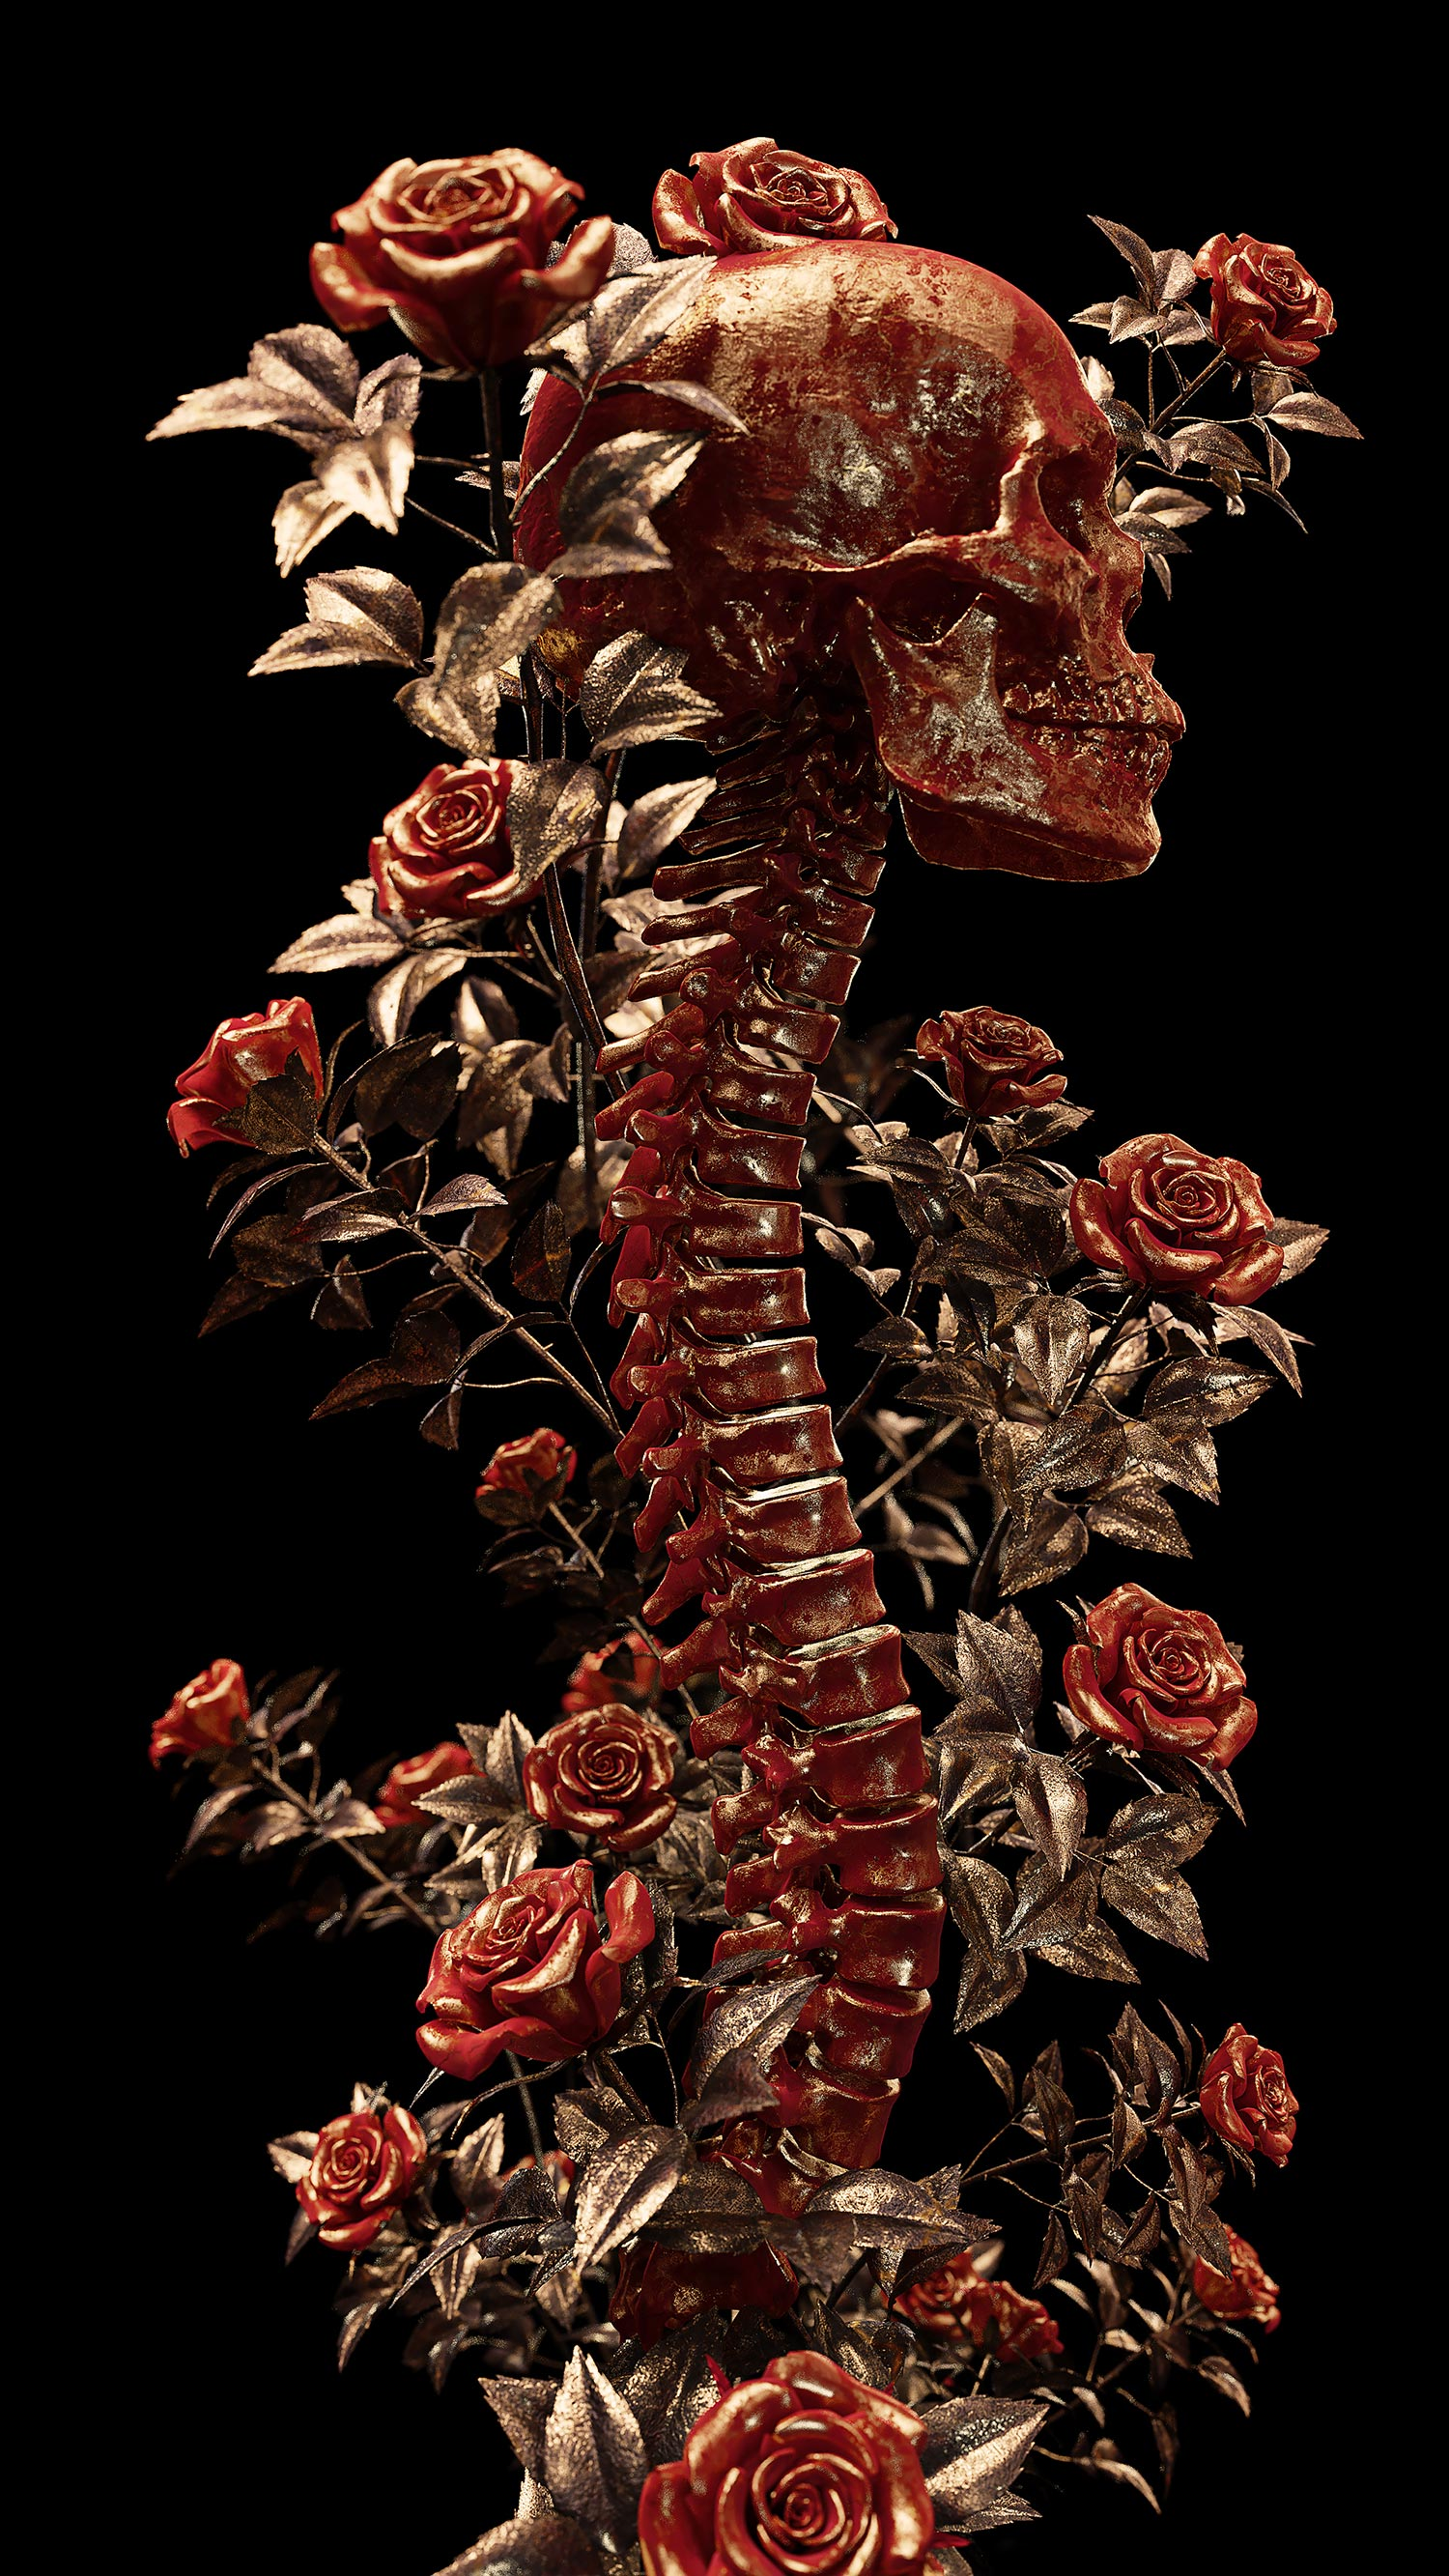 Billelis - spine and flowers